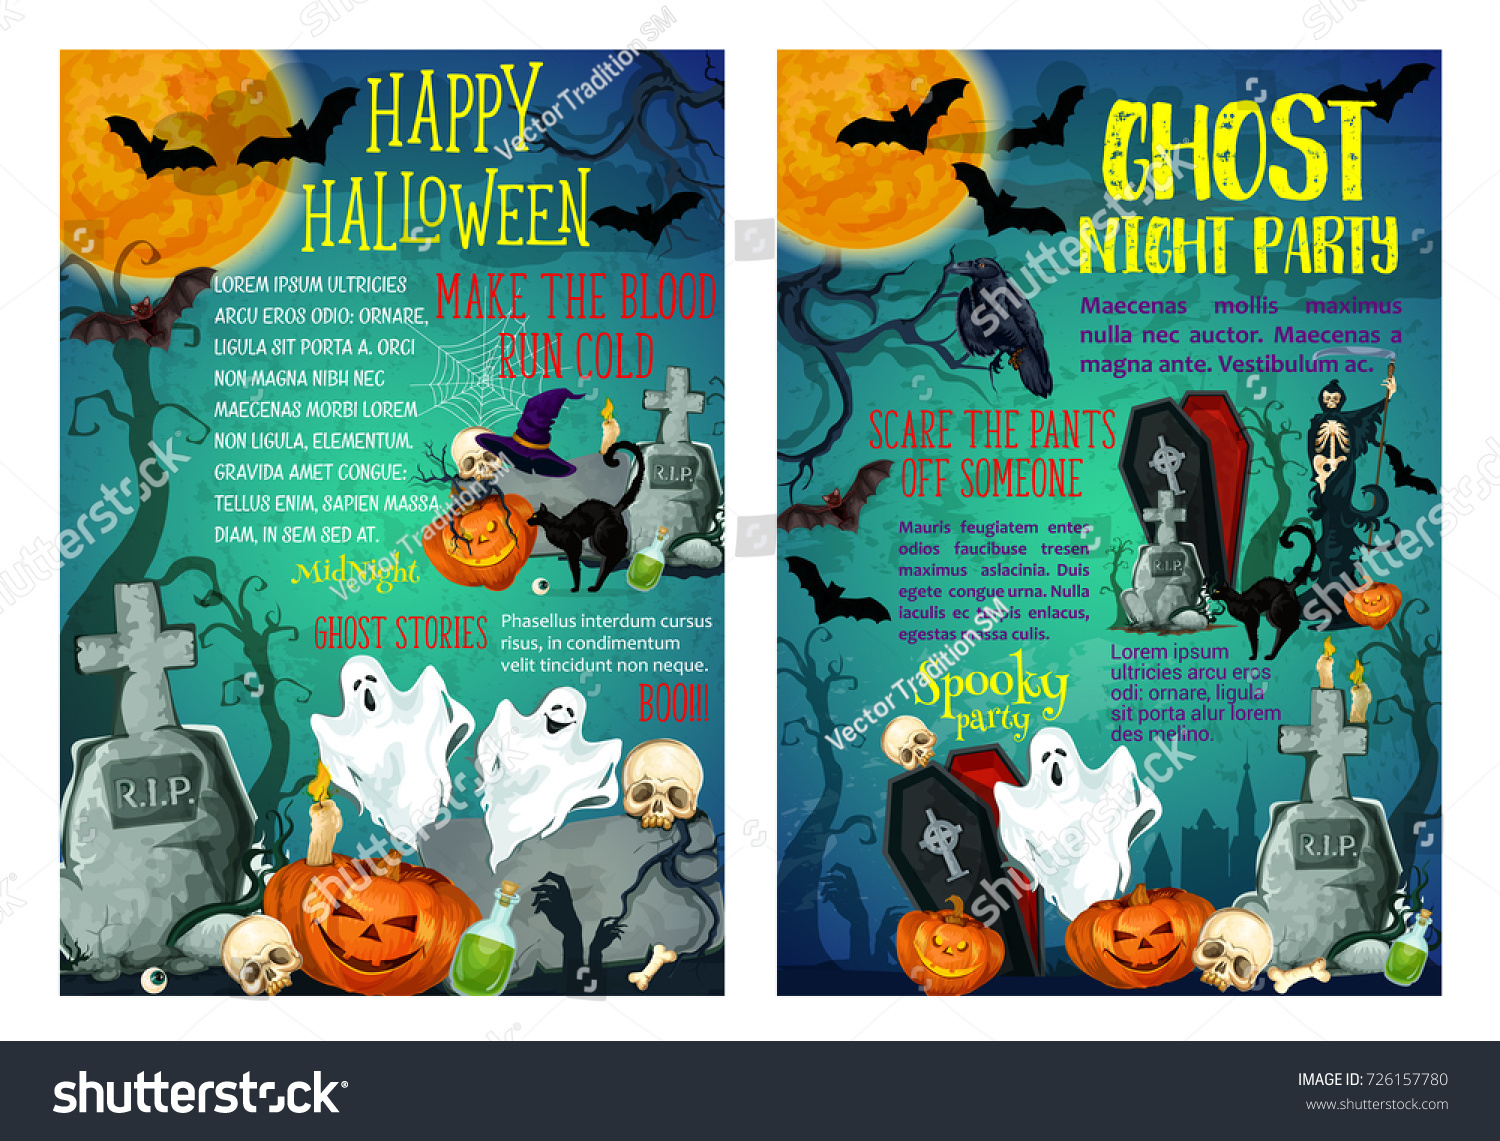 Halloween Spooky Ghost Party Invitation Posters Vector – Scary or Horror Invitation Cards